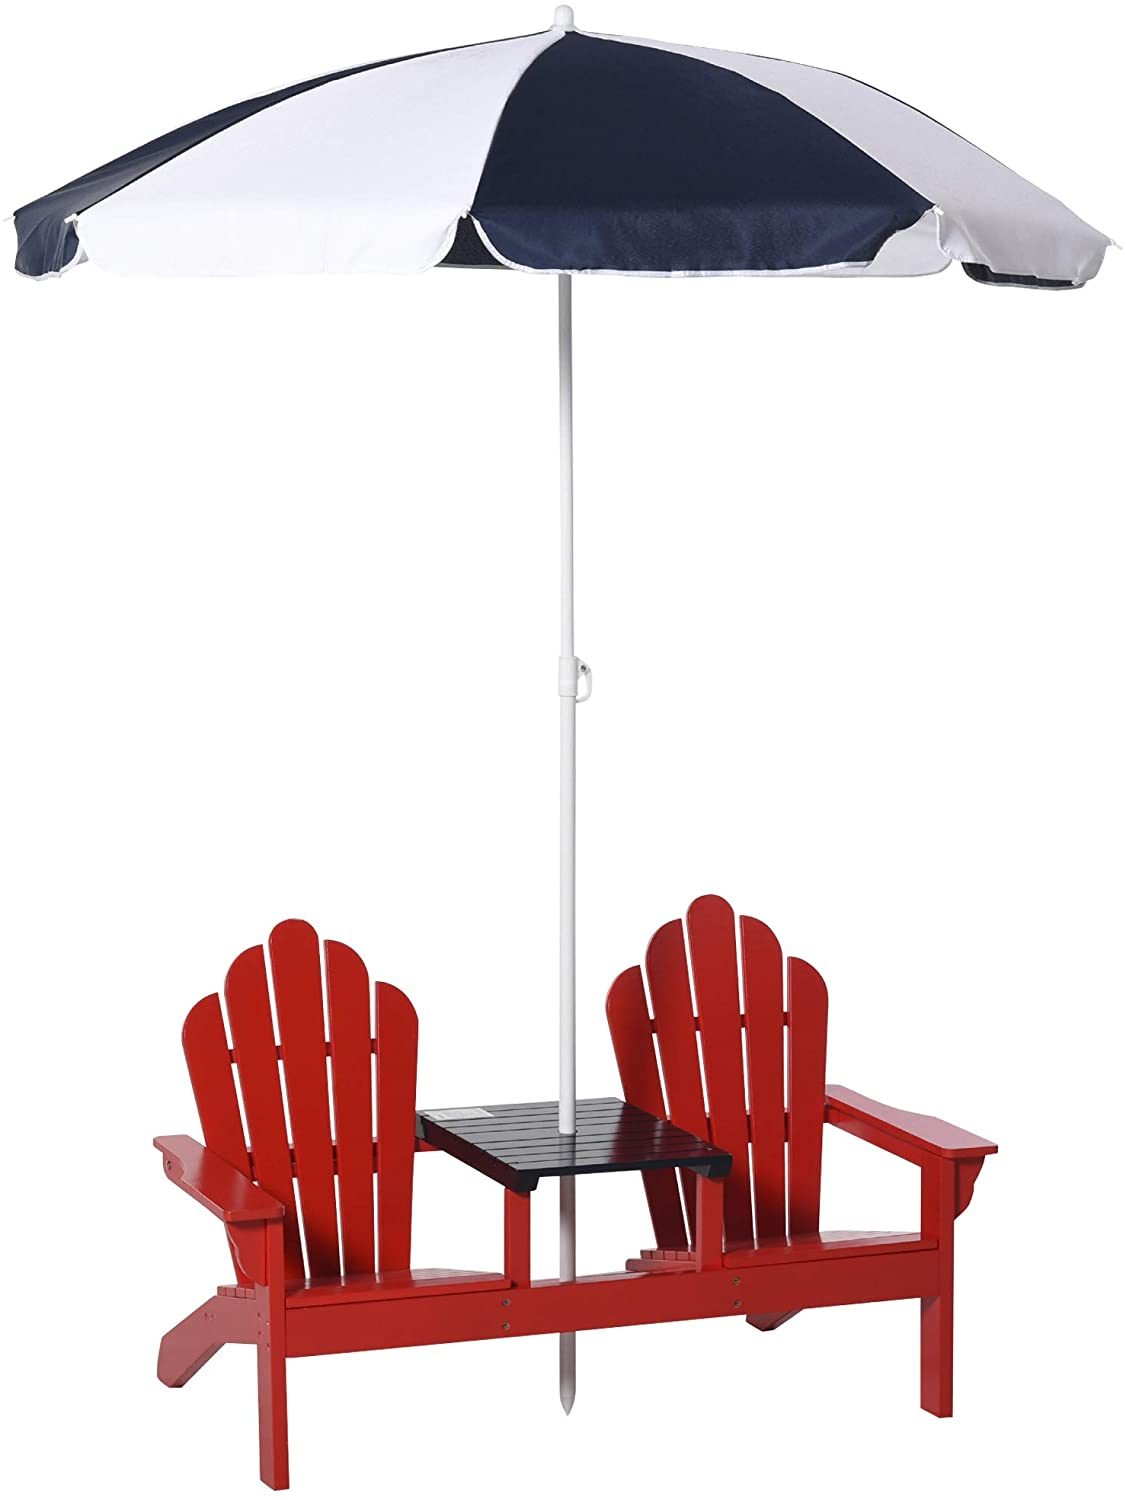 Outsunny Kids Double Adirondack Chair Table Set with Removable Umbrella